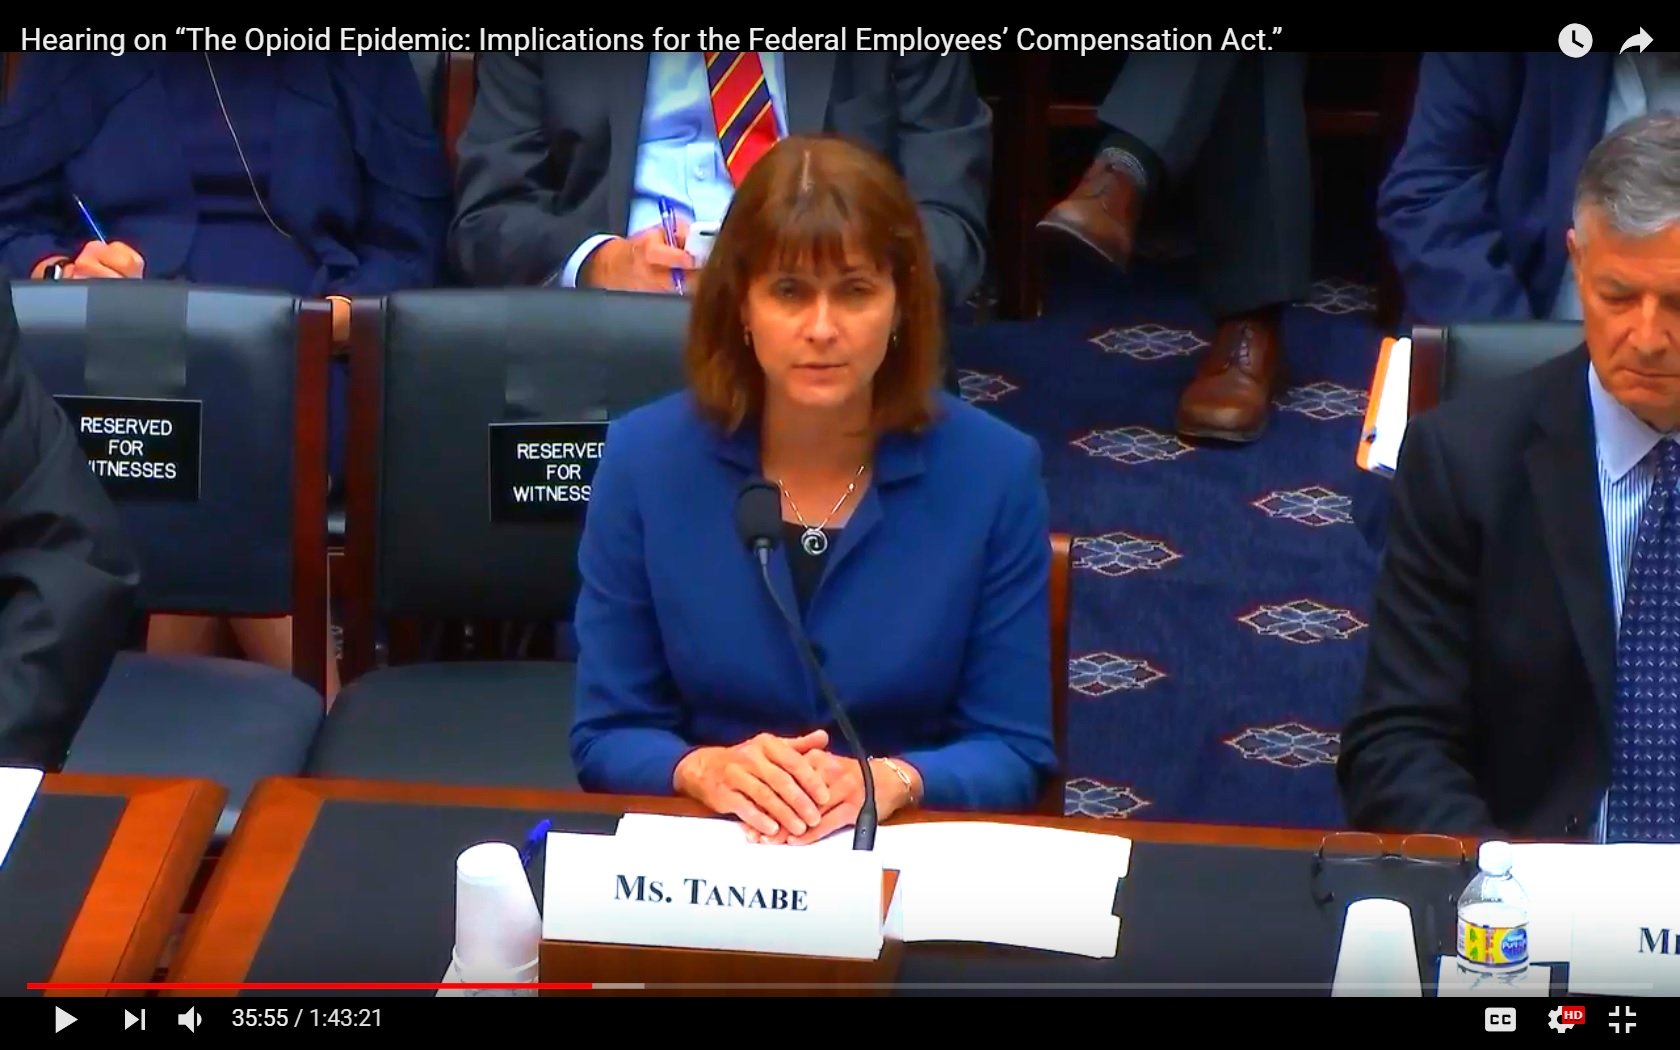 House Committee on Education & the Workforce discusses opioids and federal employees image